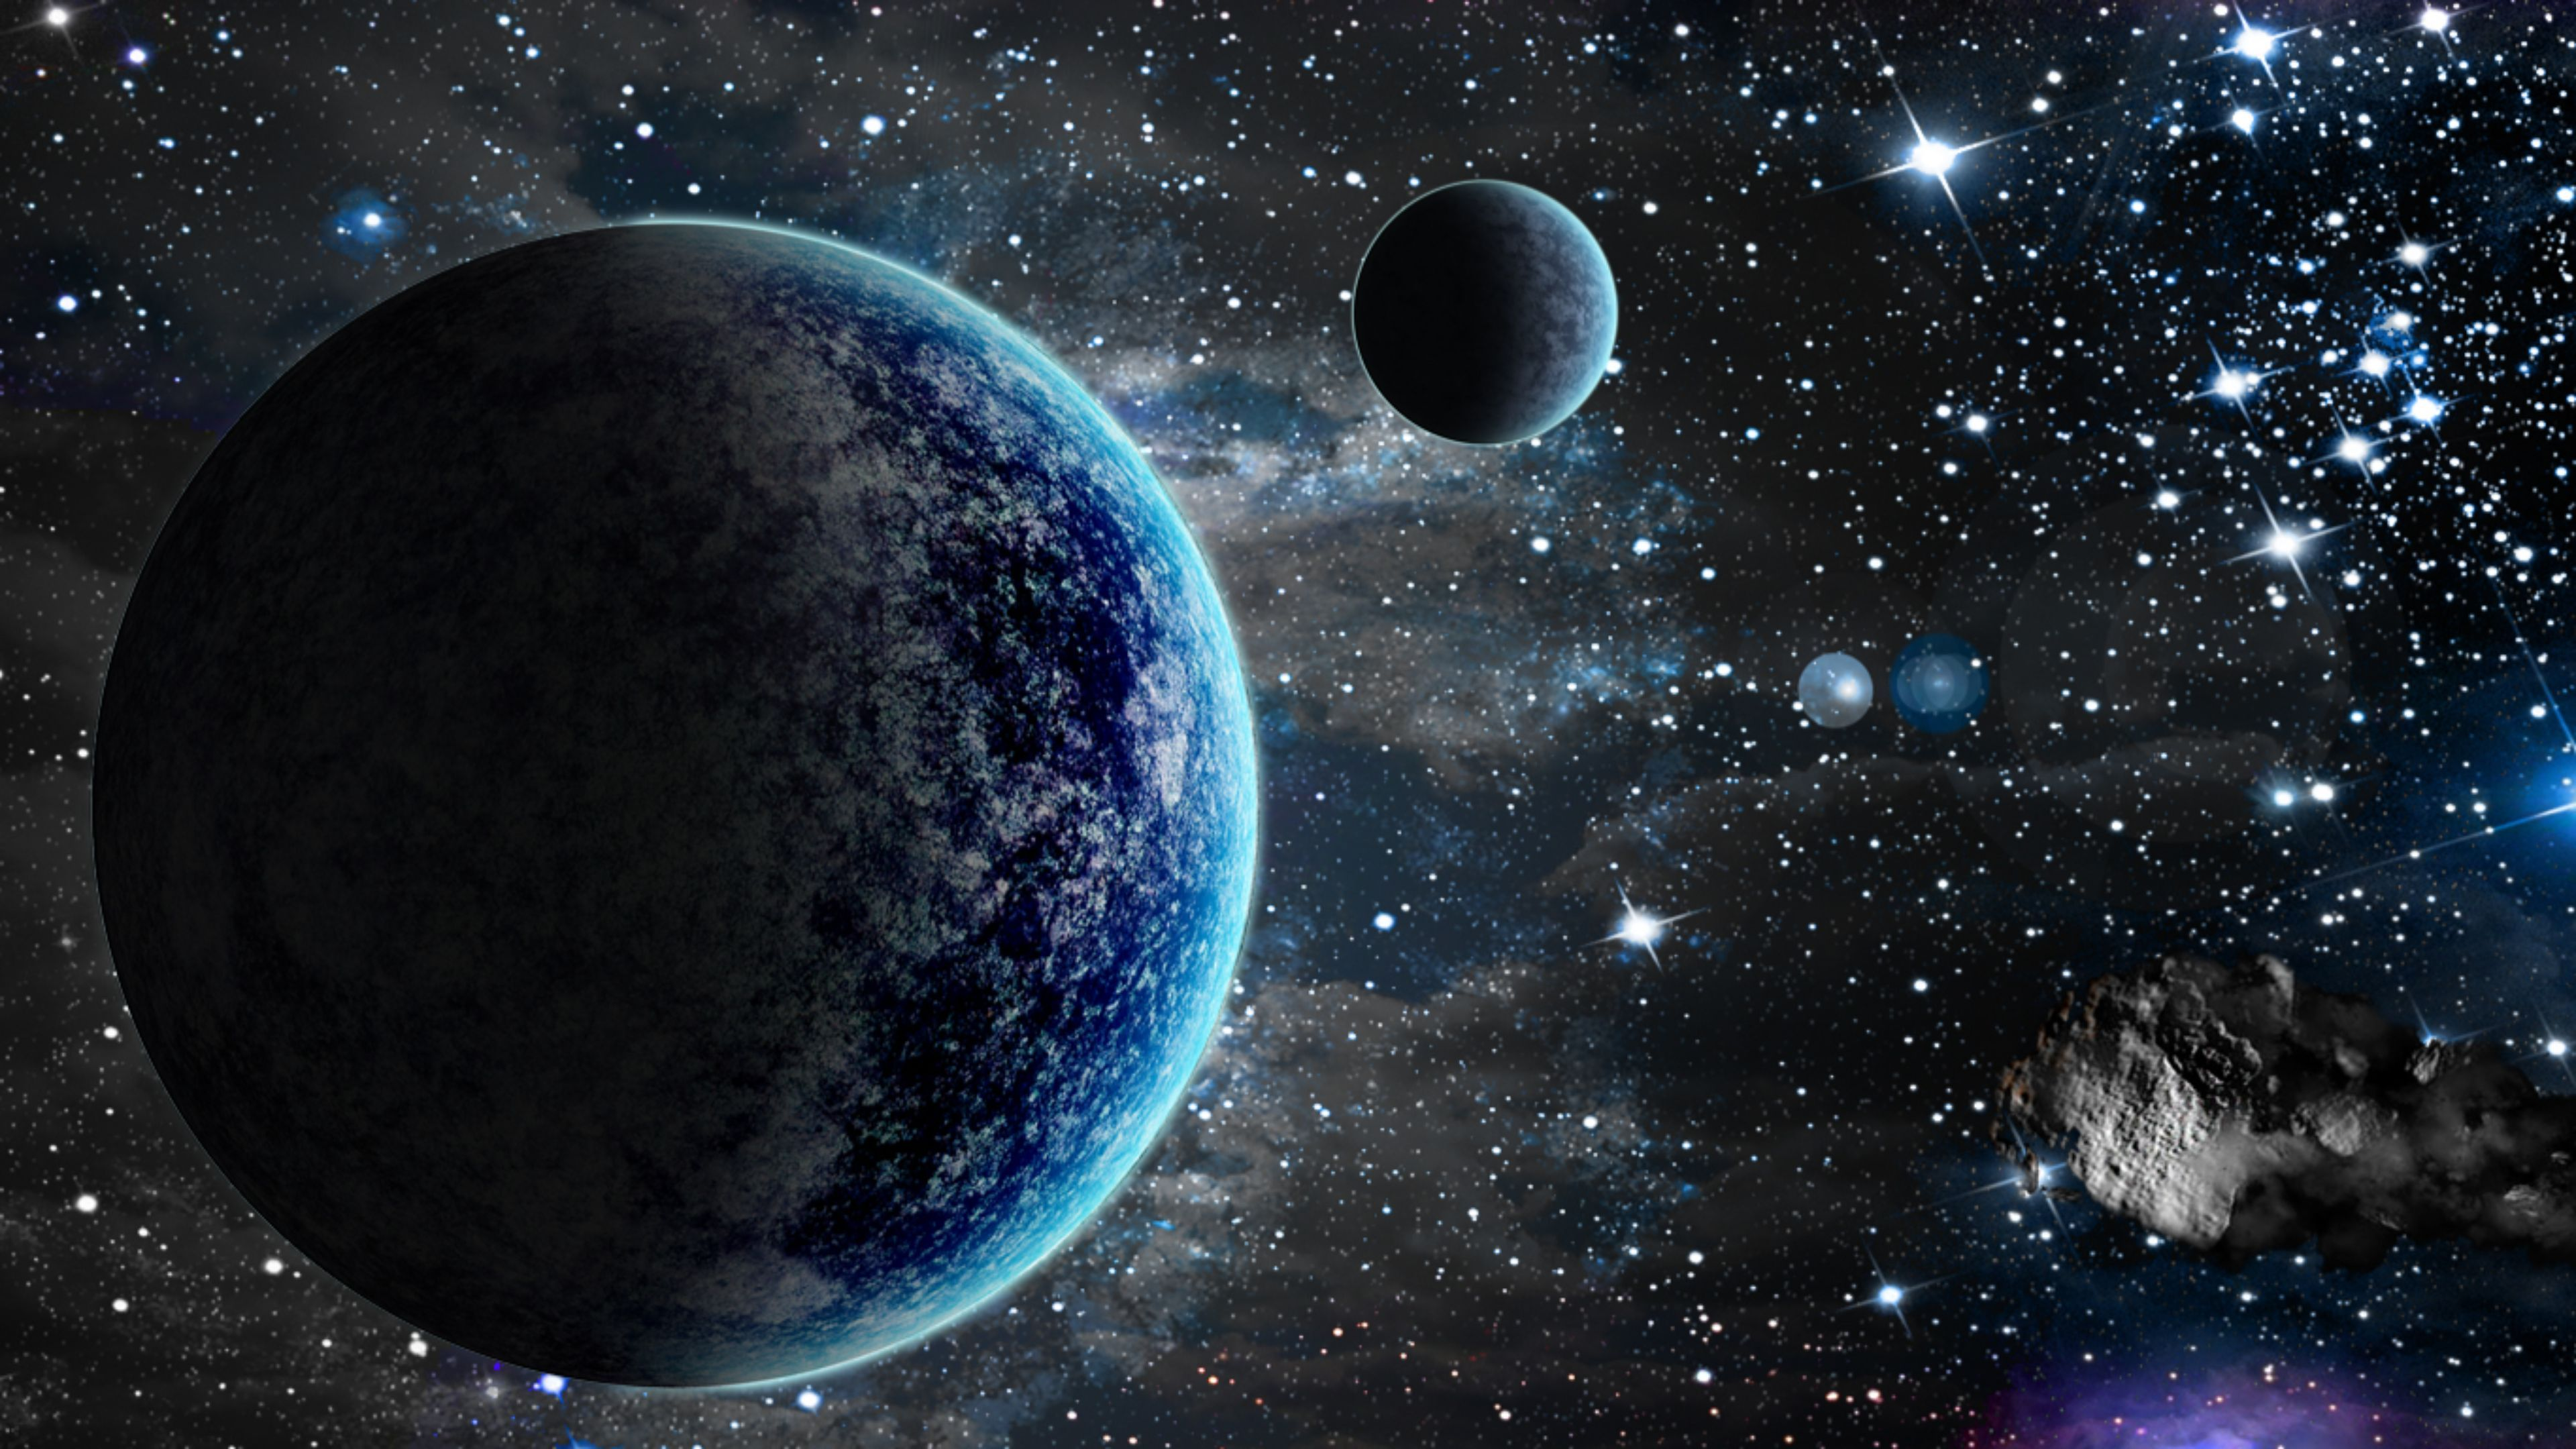 4k planet wallpapers top free 4k planet backgrounds - Best space wallpapers 4k ...